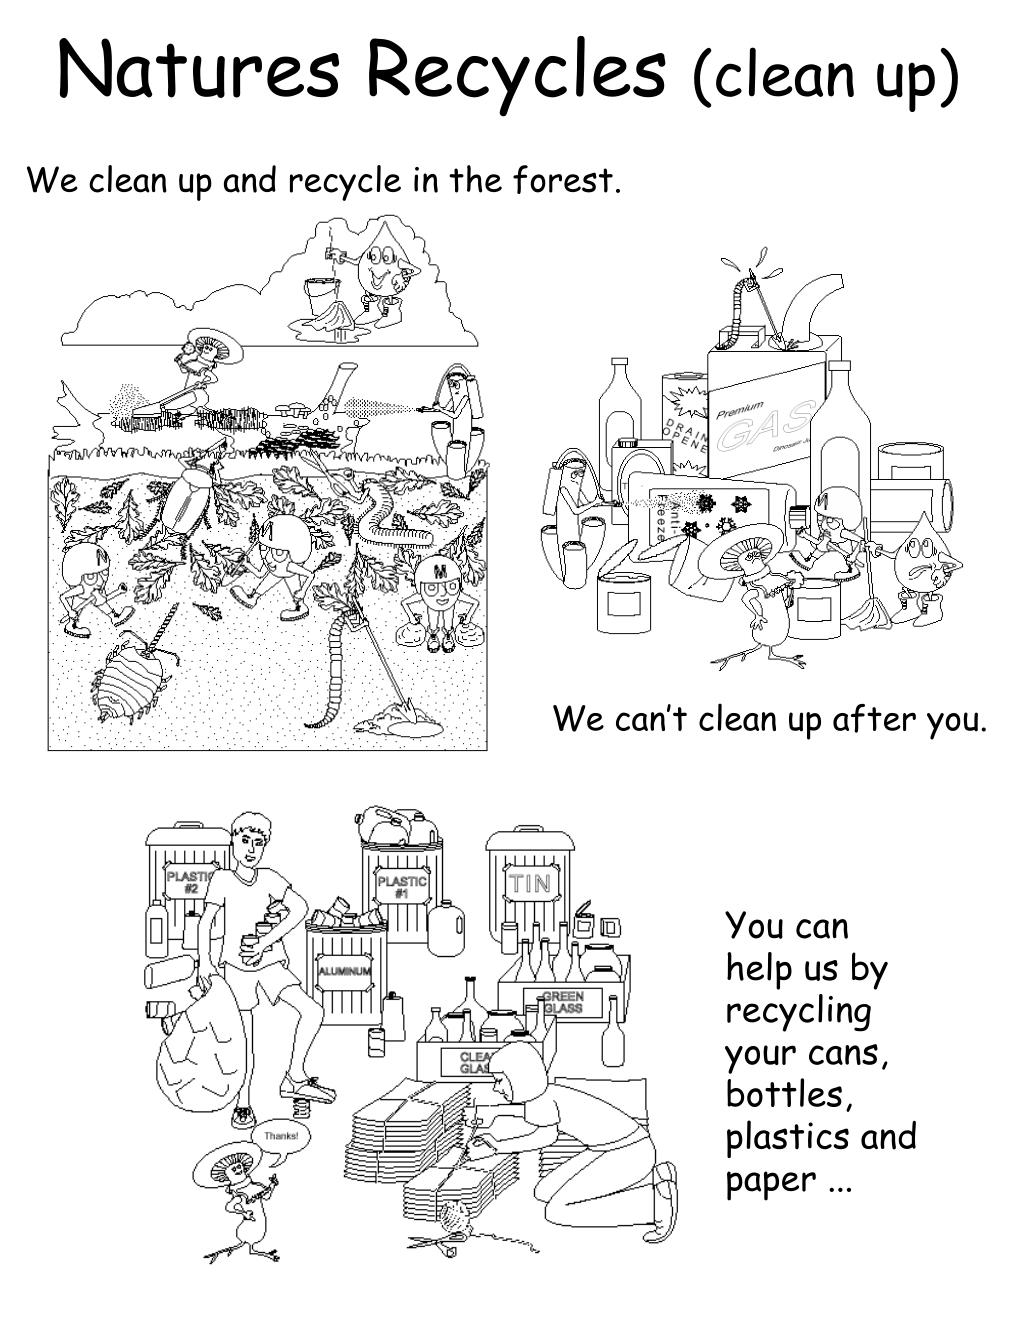 Natures Recycles